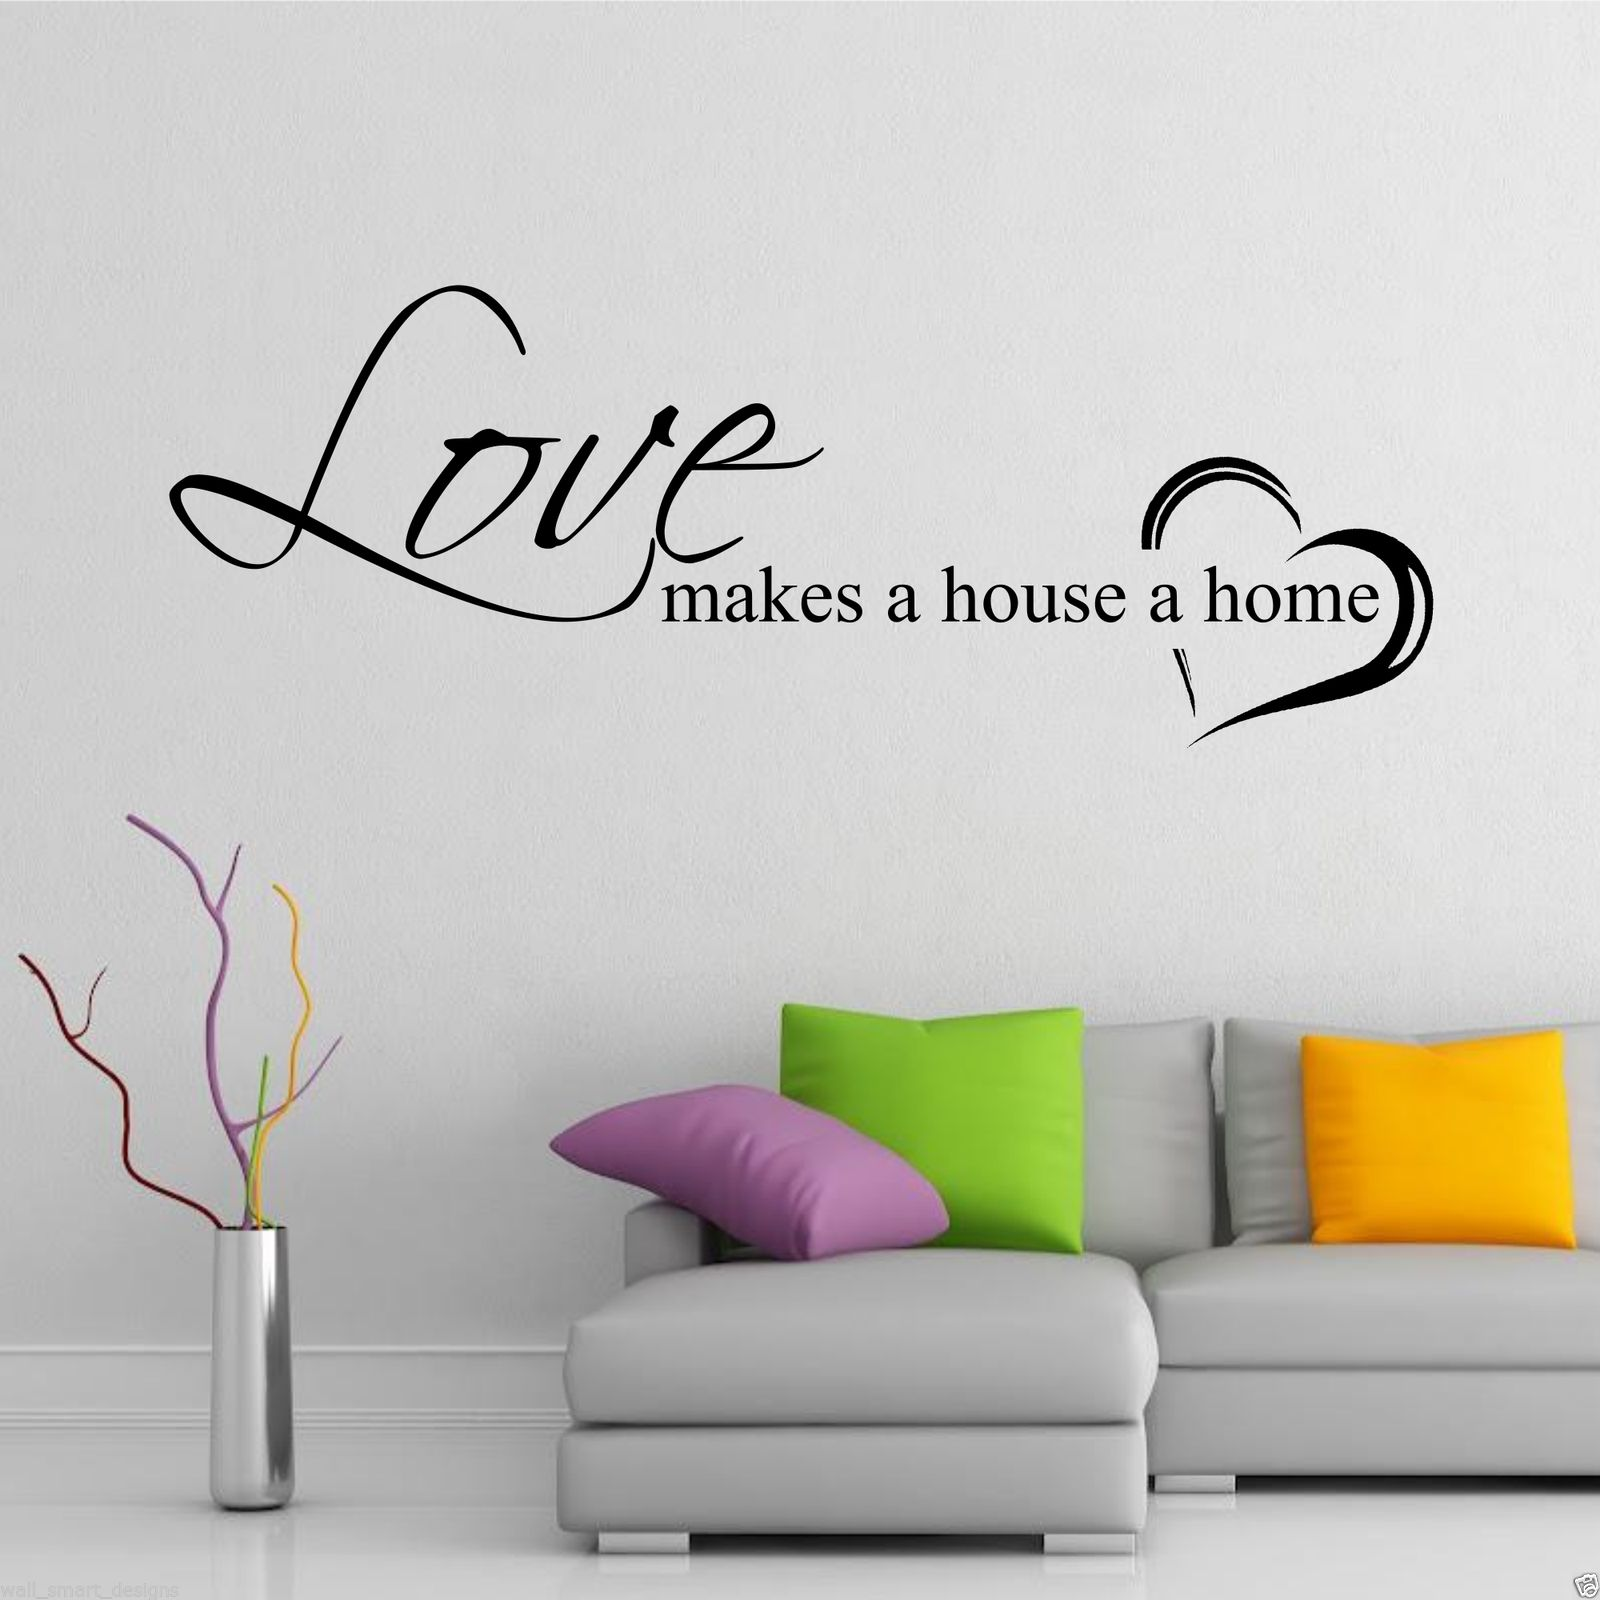 transfer wall art shenra com home love family wall art sticker quote decal mural transfer